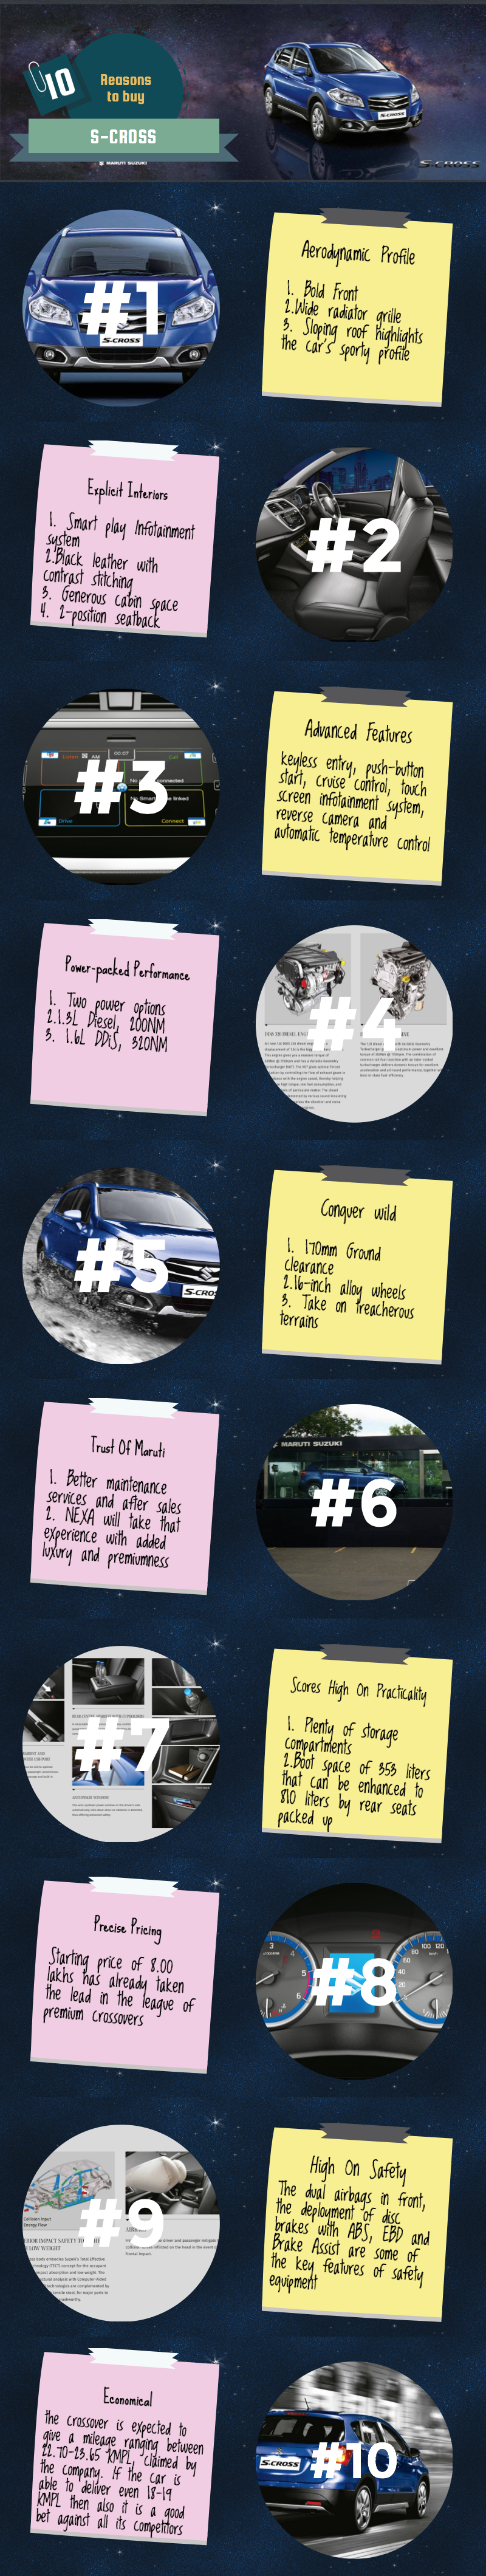 Top 10 reason to buy S-Cross - Infographic